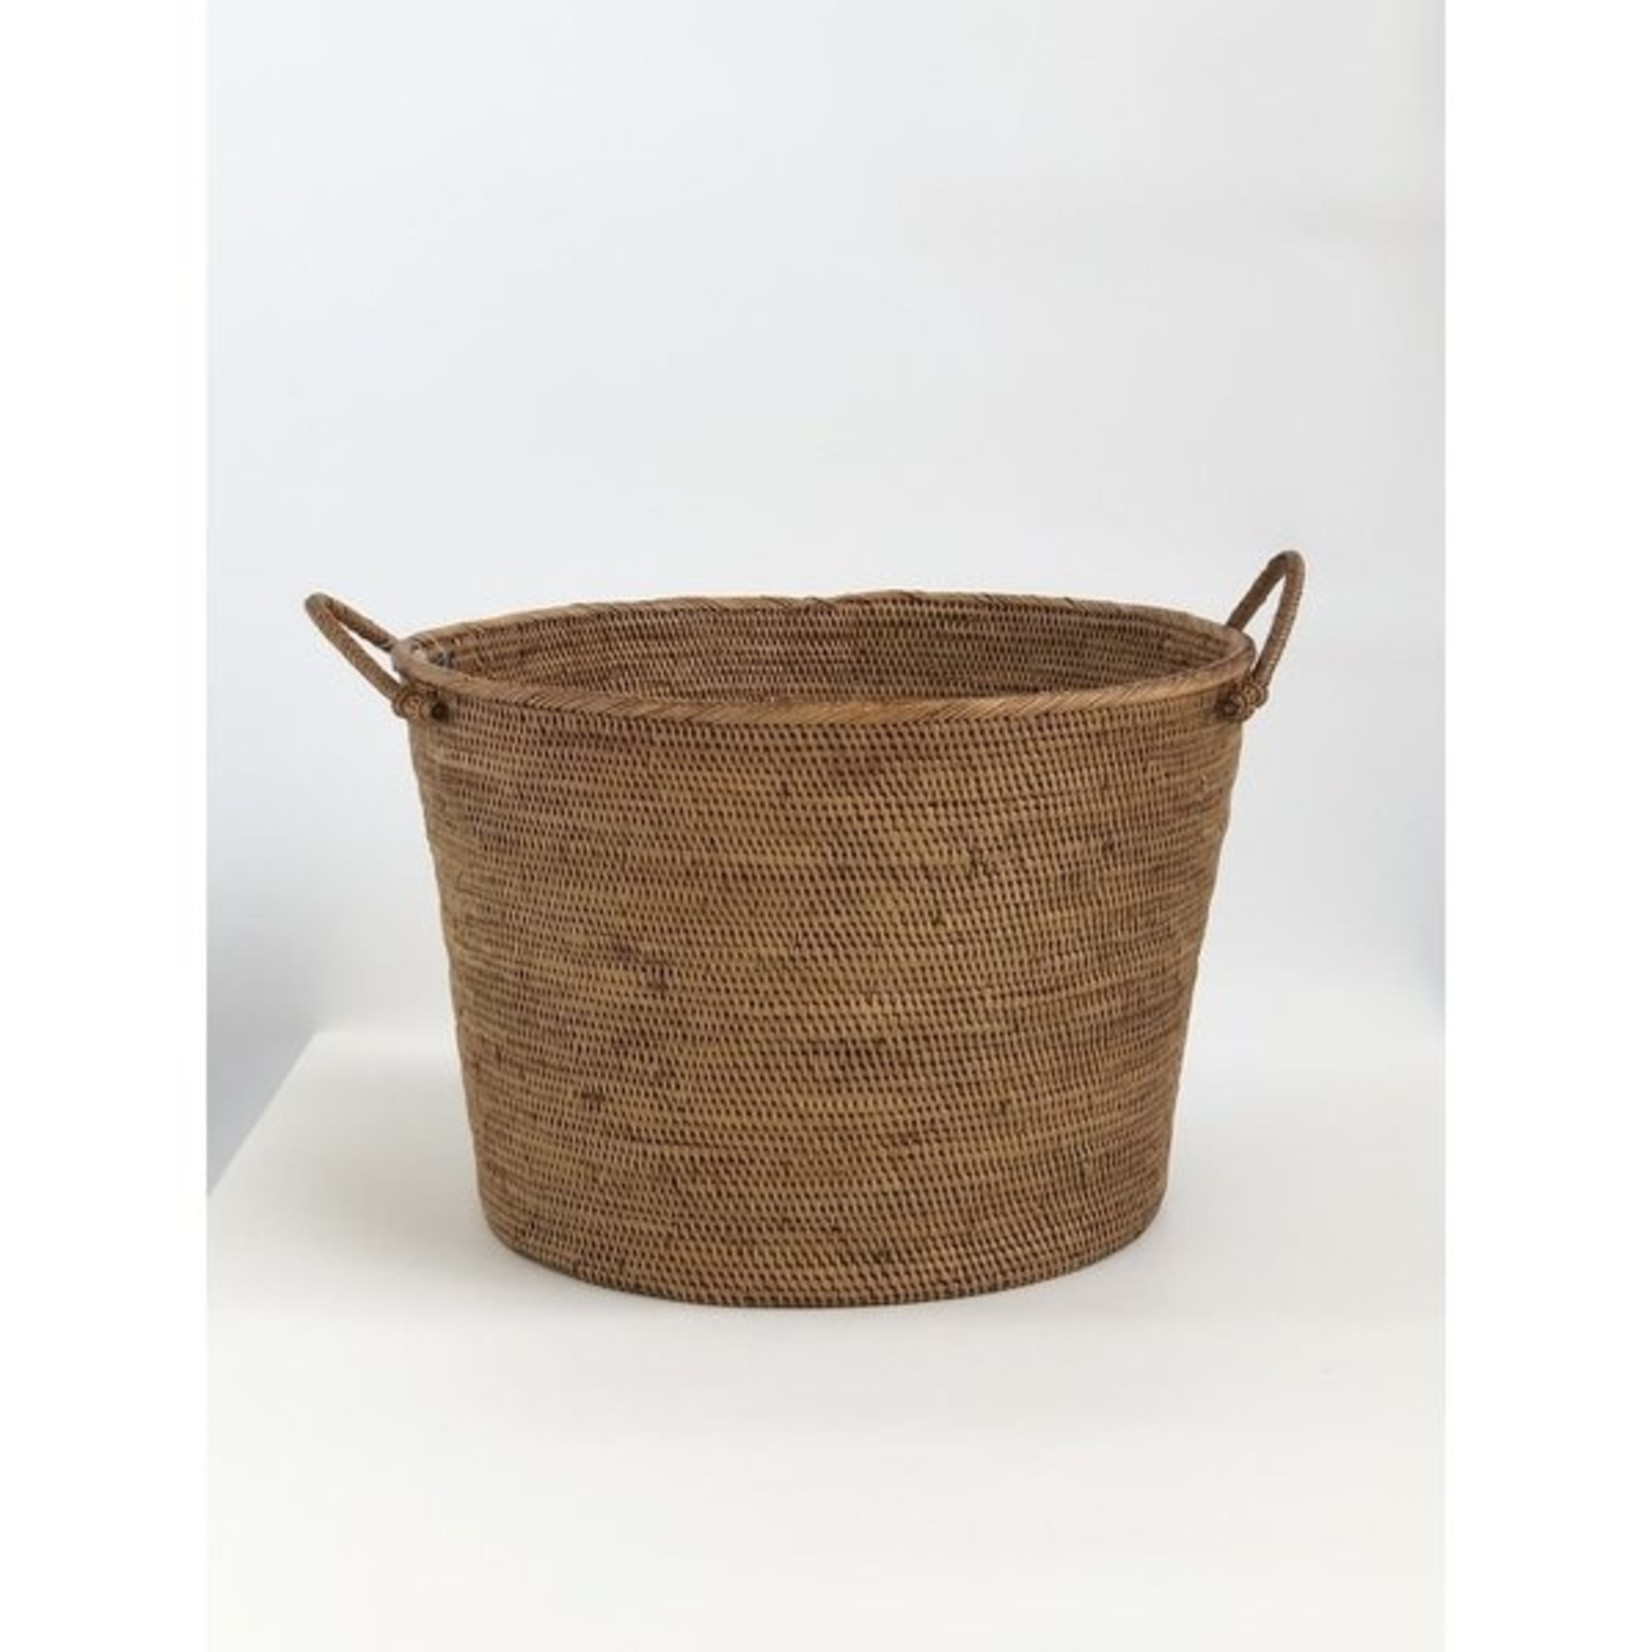 AndYu Ata Grass Laundry Basket